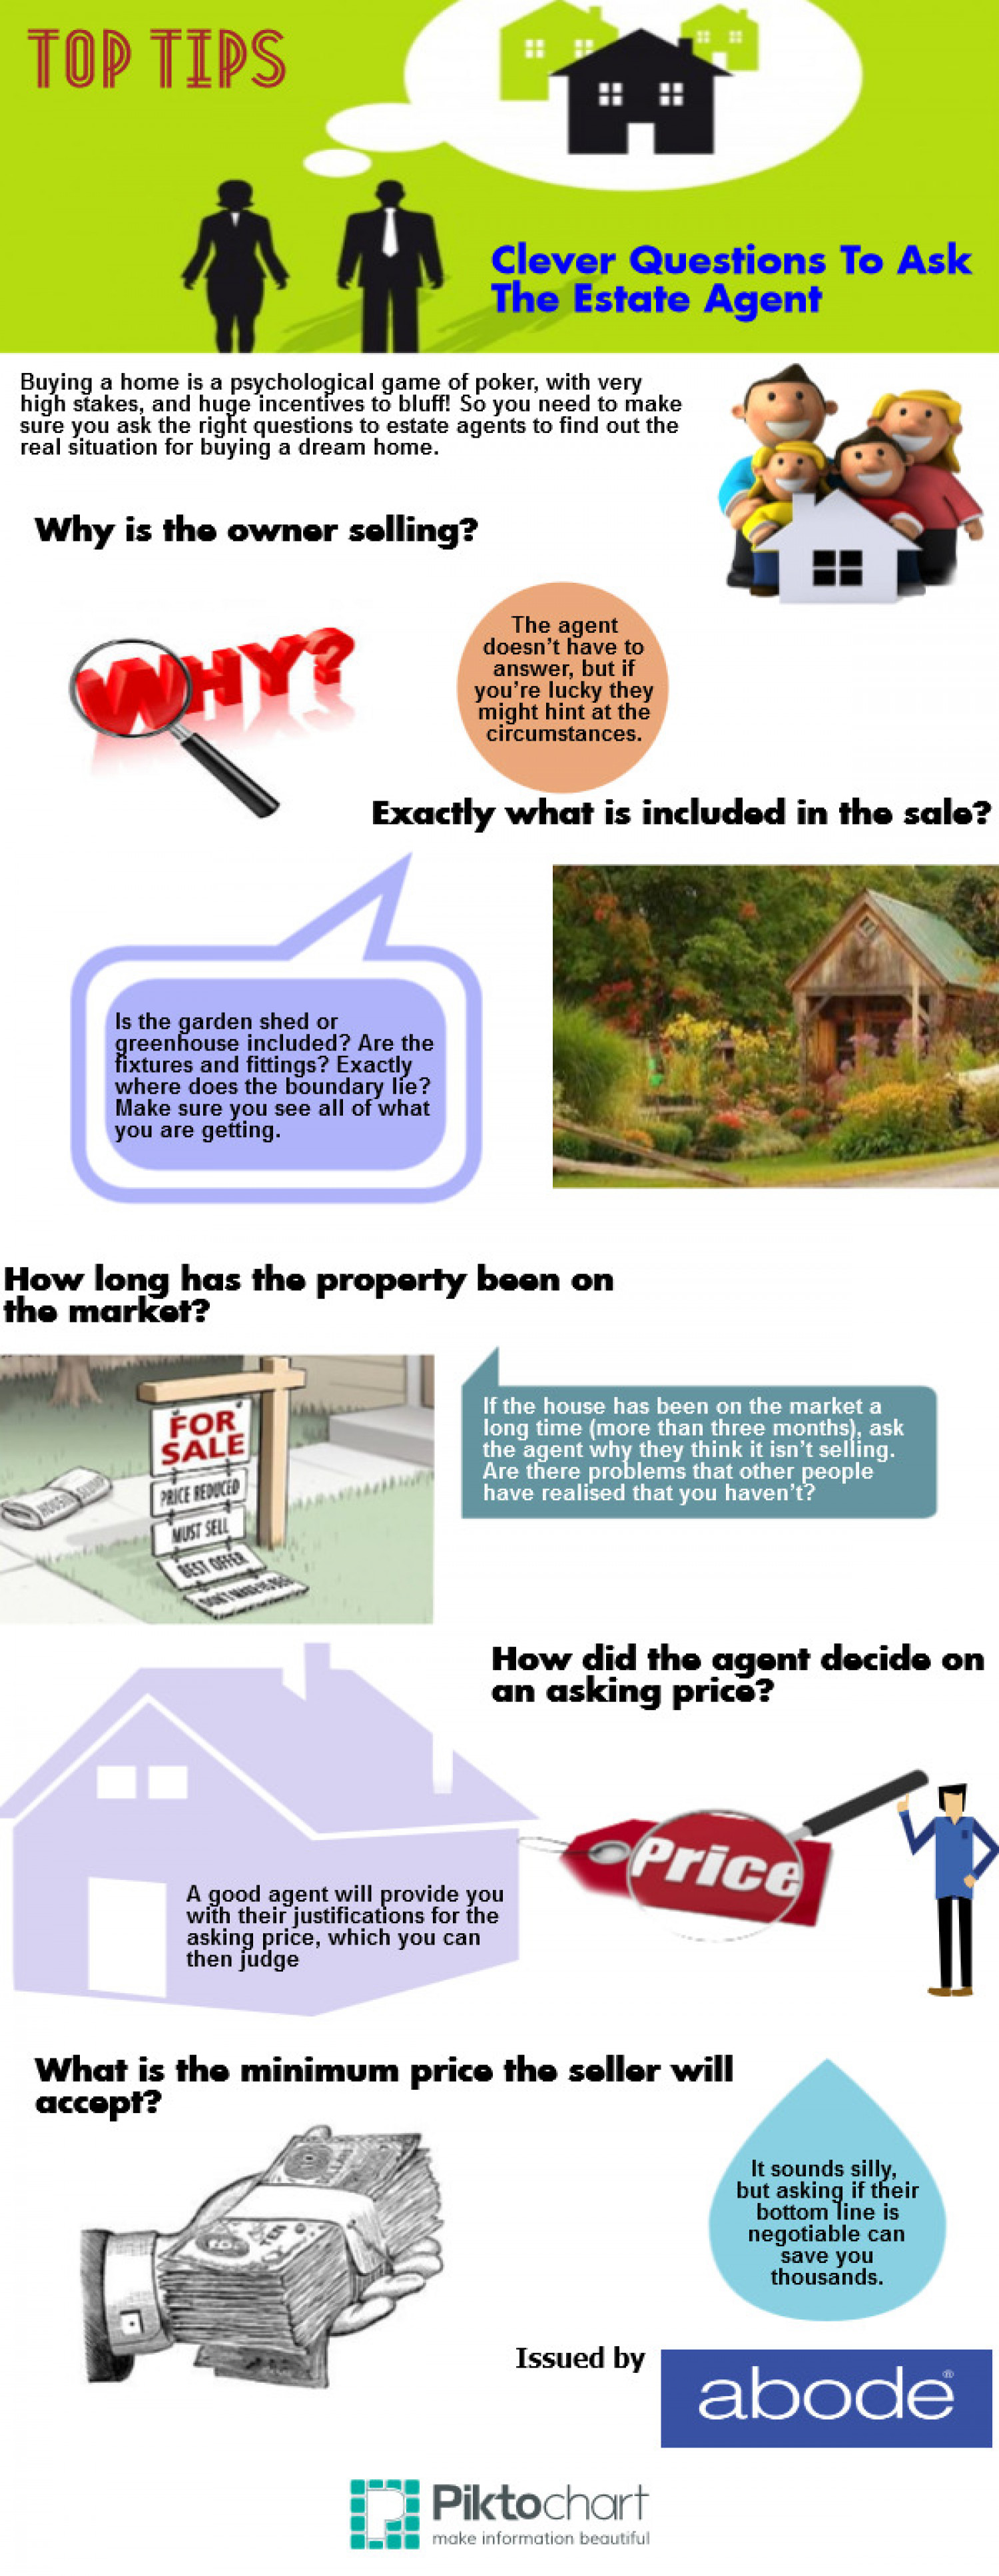 Top Tips Clever Questions To Ask The Estate Agent Visual Ly